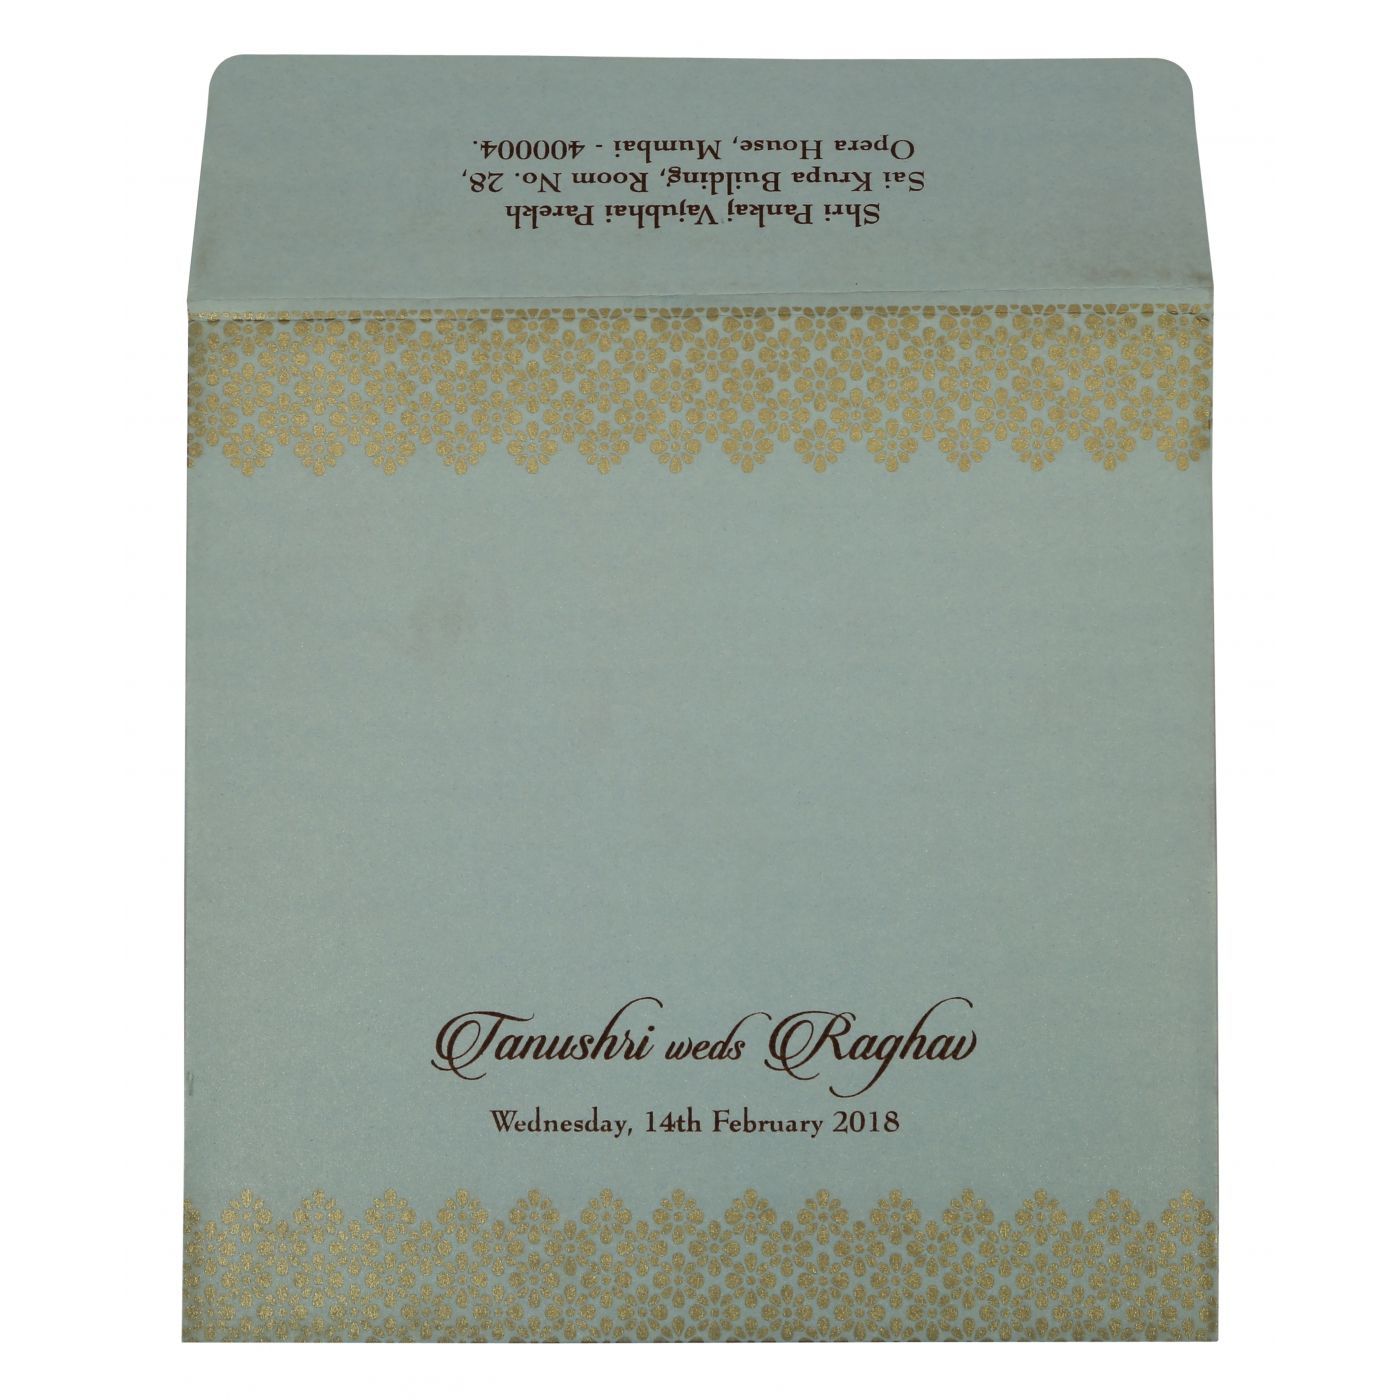 SHELL GREY SHIMMERY FOIL STAMPED WEDDING INVITATION : CW-1801 - IndianWeddingCards